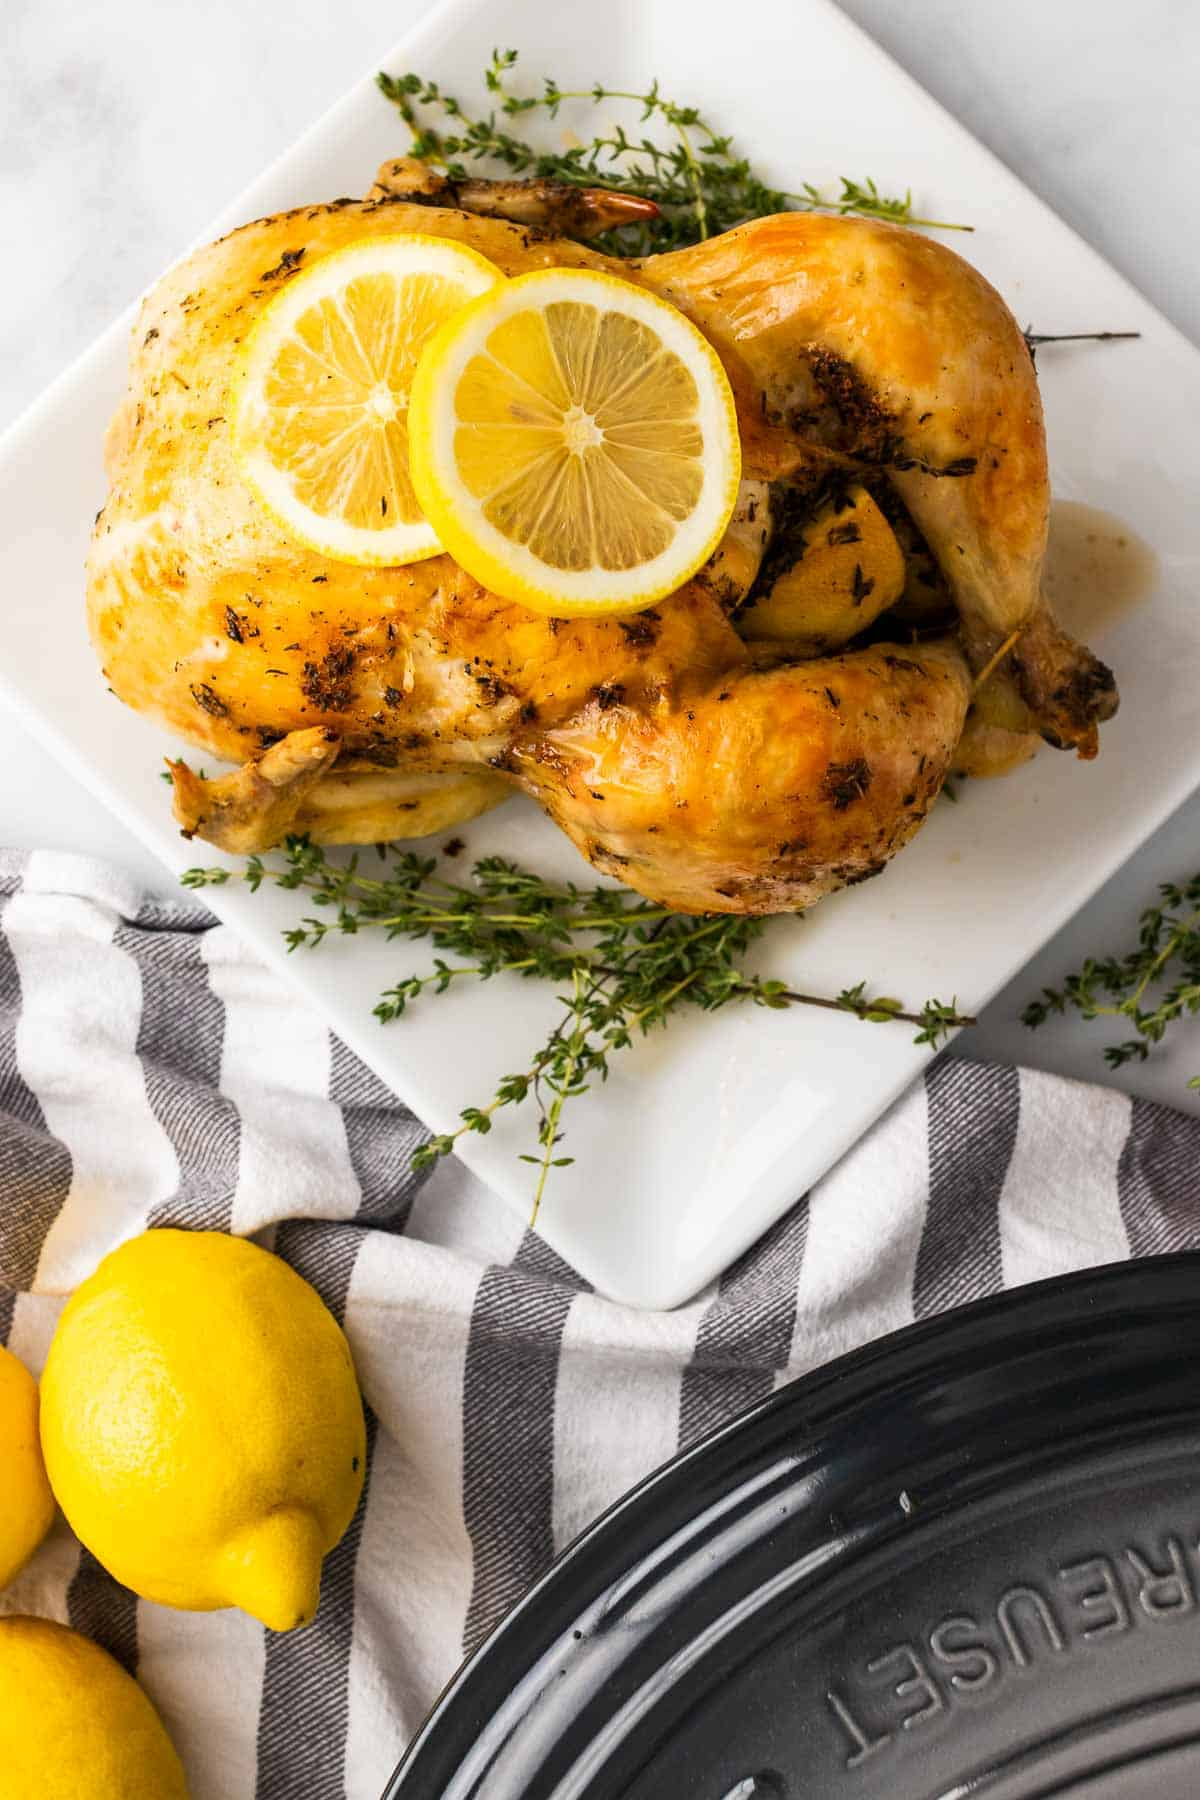 Whole chicken on a white plate next to sprigs of thyme and garnished with two lemon slices, as seen from above